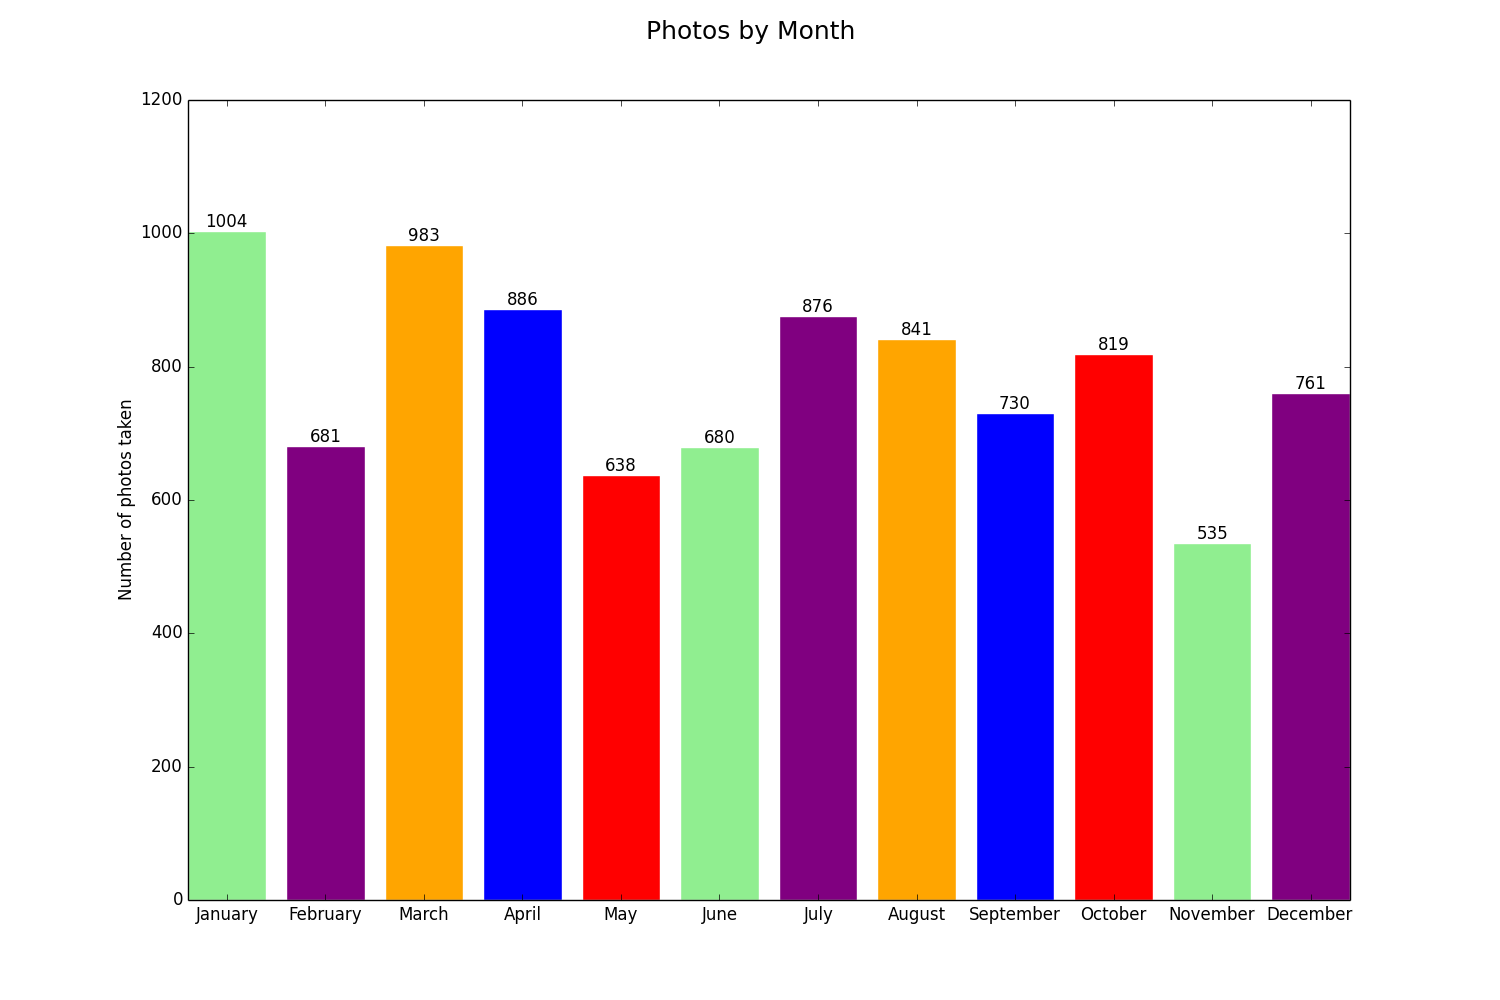 Number of photos by month